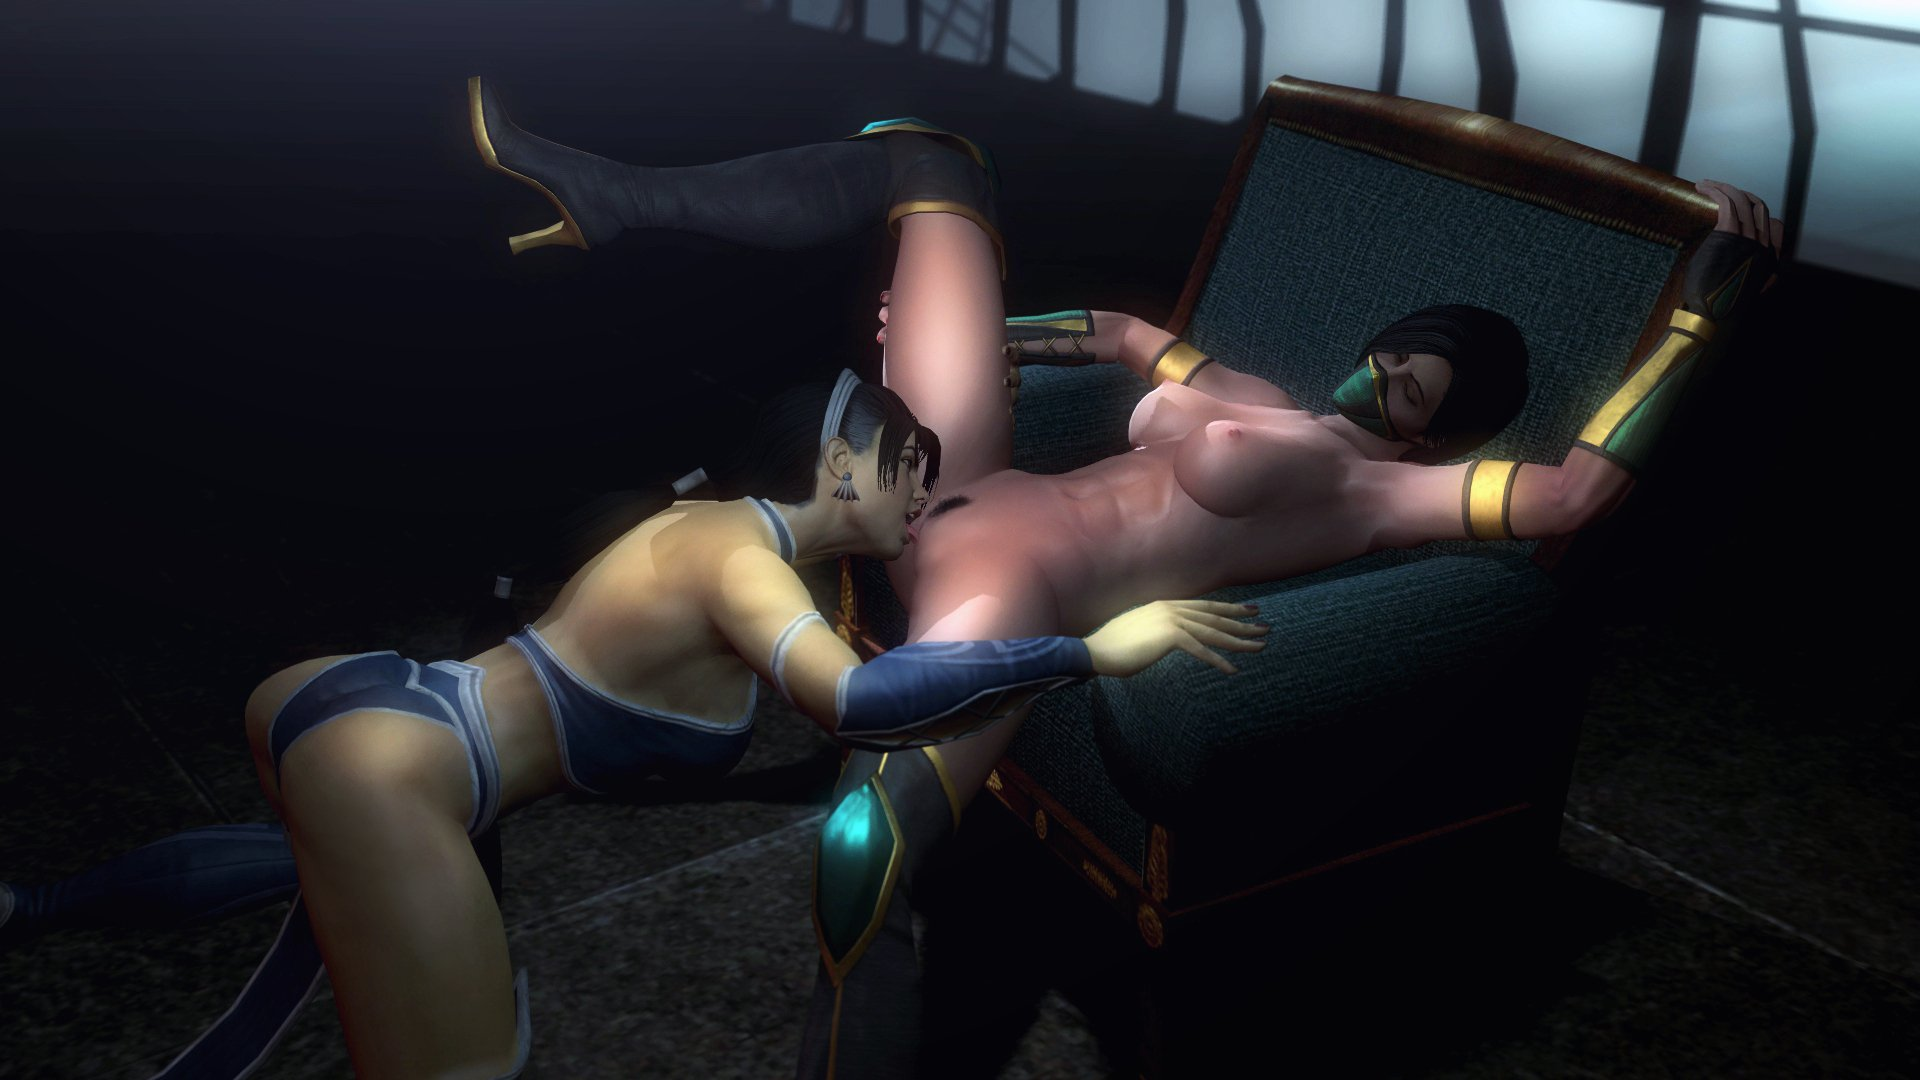 Mortal kombat sex fuck erotic picture